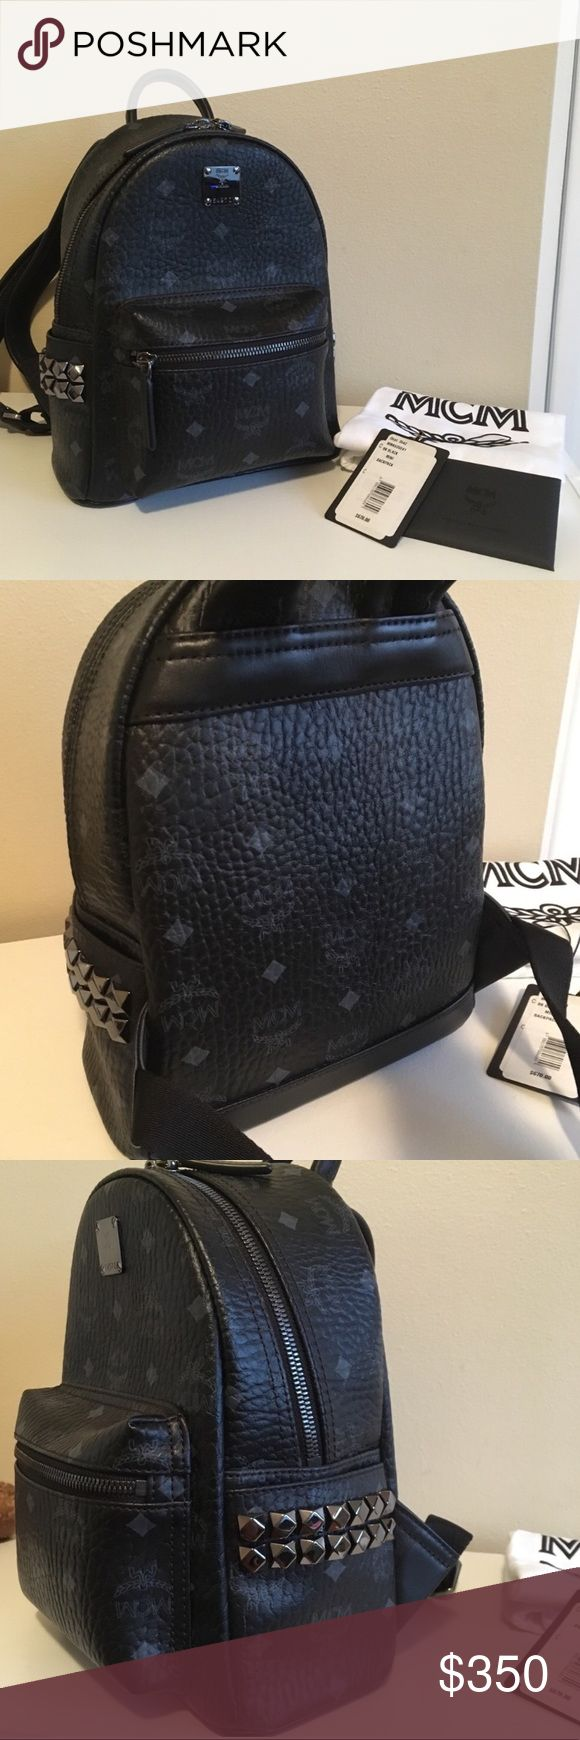 "Brand new black mcm backpack This is the Mini- size MCM backpack (not to be confused with smaller ""X-Mini Bebe Boo"" version) For negotiating prices contact 847-644-2914 MCM Bags"